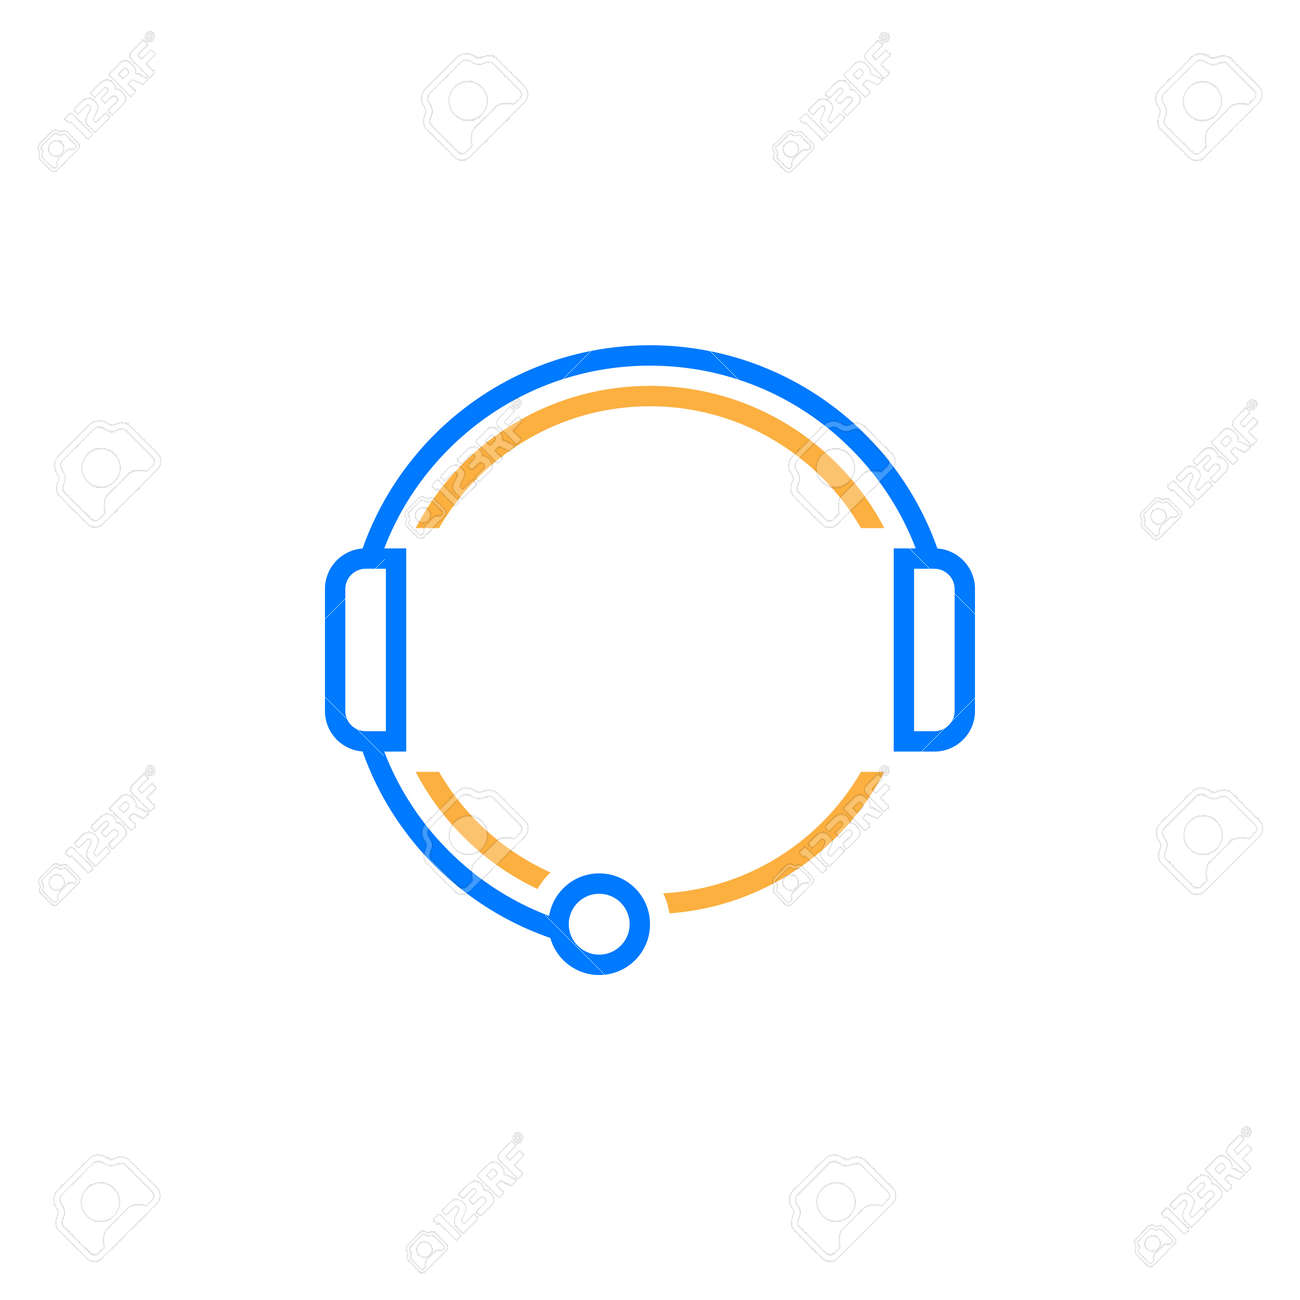 customer support line icon call center outline vector logo illustration royalty free cliparts vectors and stock illustration image 77920773 customer support line icon call center outline vector logo illustration